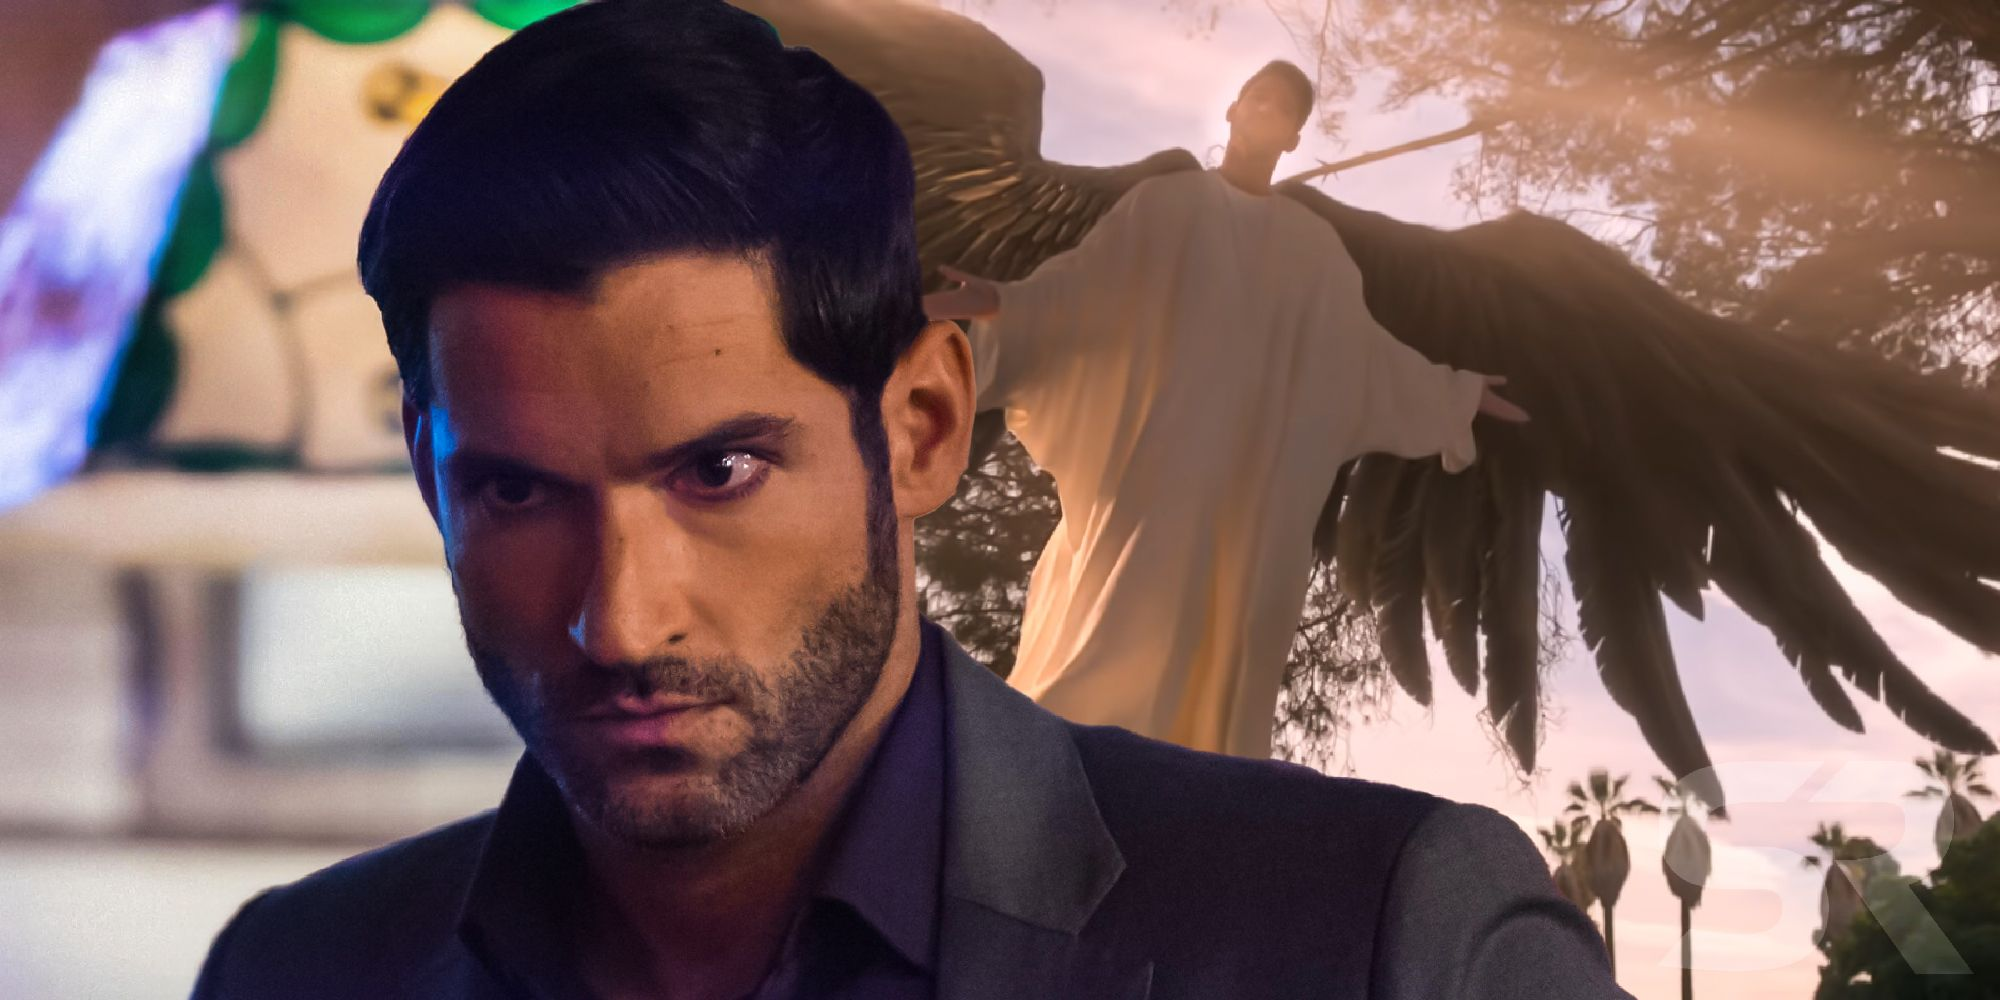 Lucifer Season 5 Part 2: Release Date, Cast & Story Details